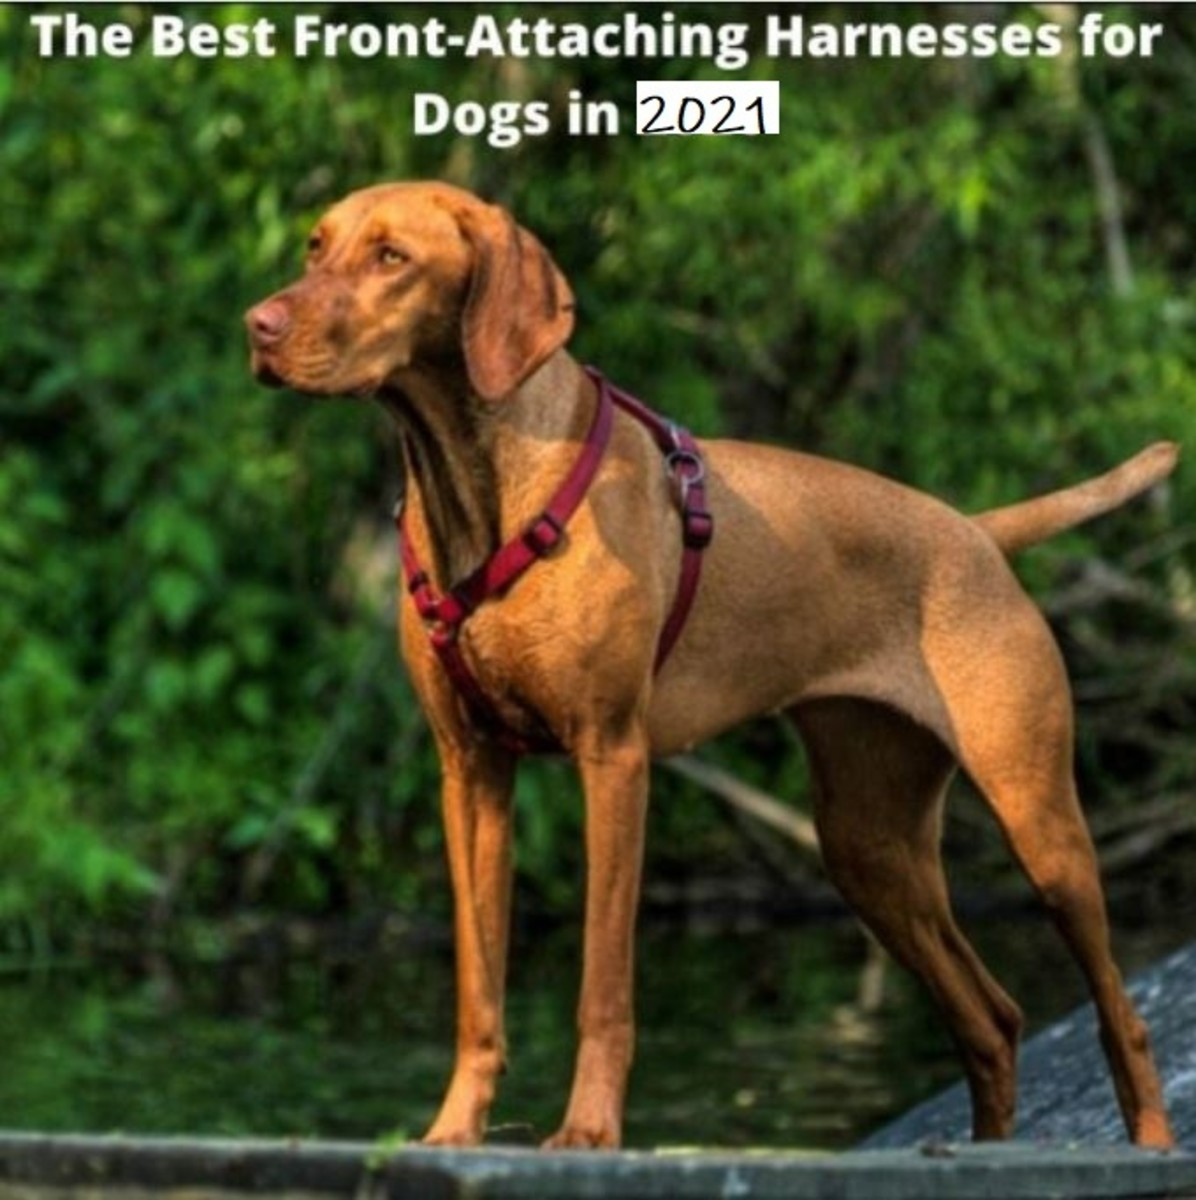 Best Front-Attaching Harnesses for Dogs in 2021